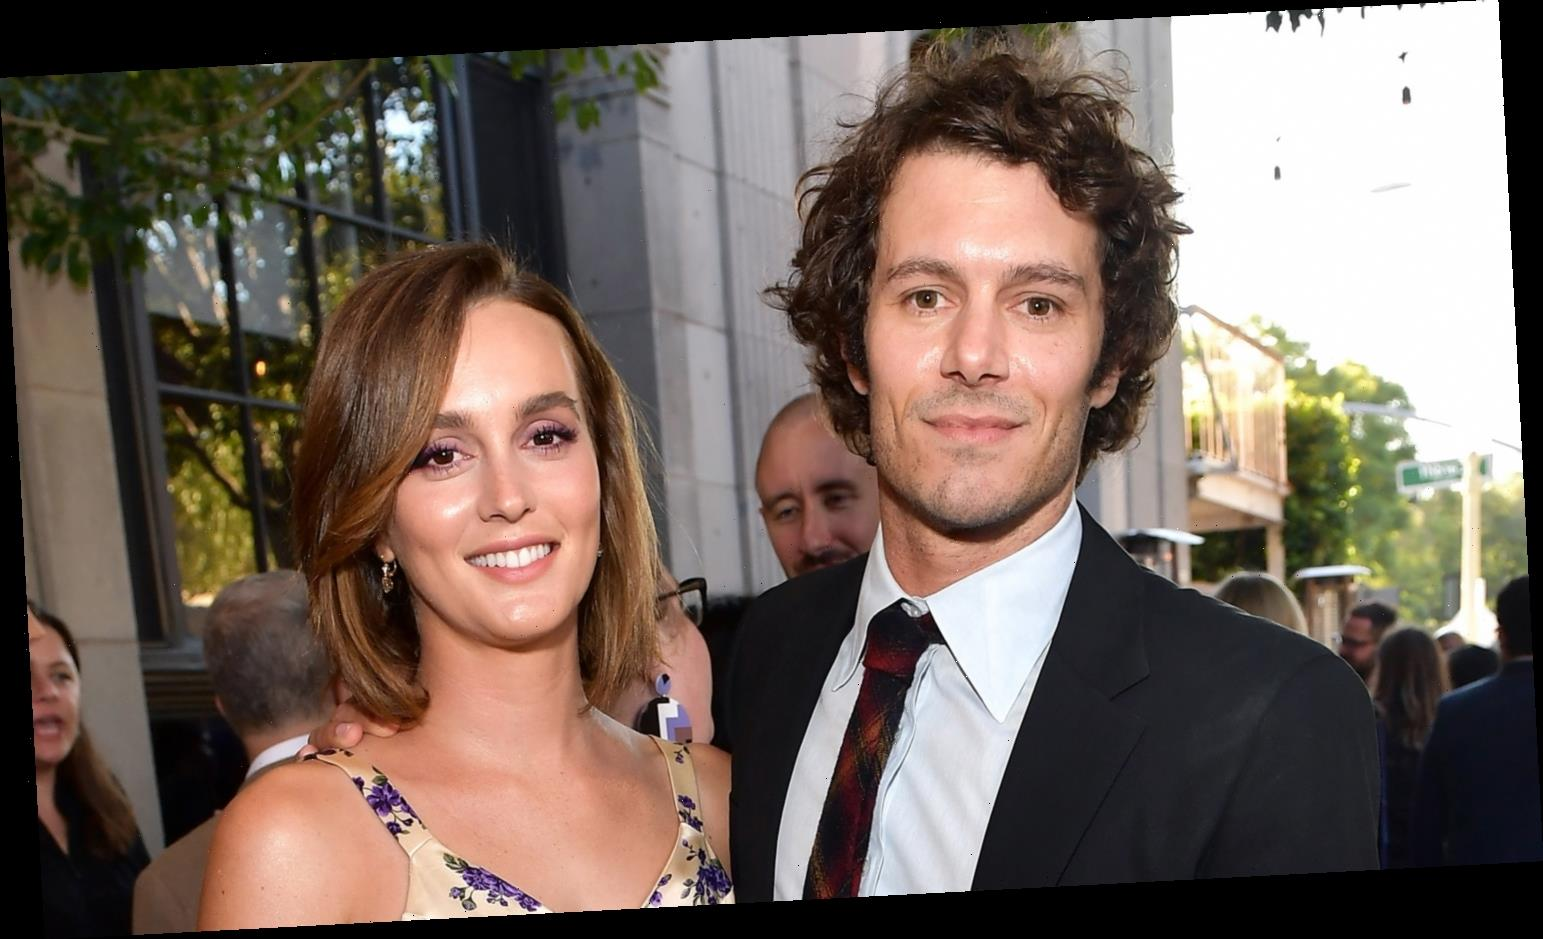 Adam Brody Reveals What He Loves Most About Leighton Meester in Rare Comments About Her